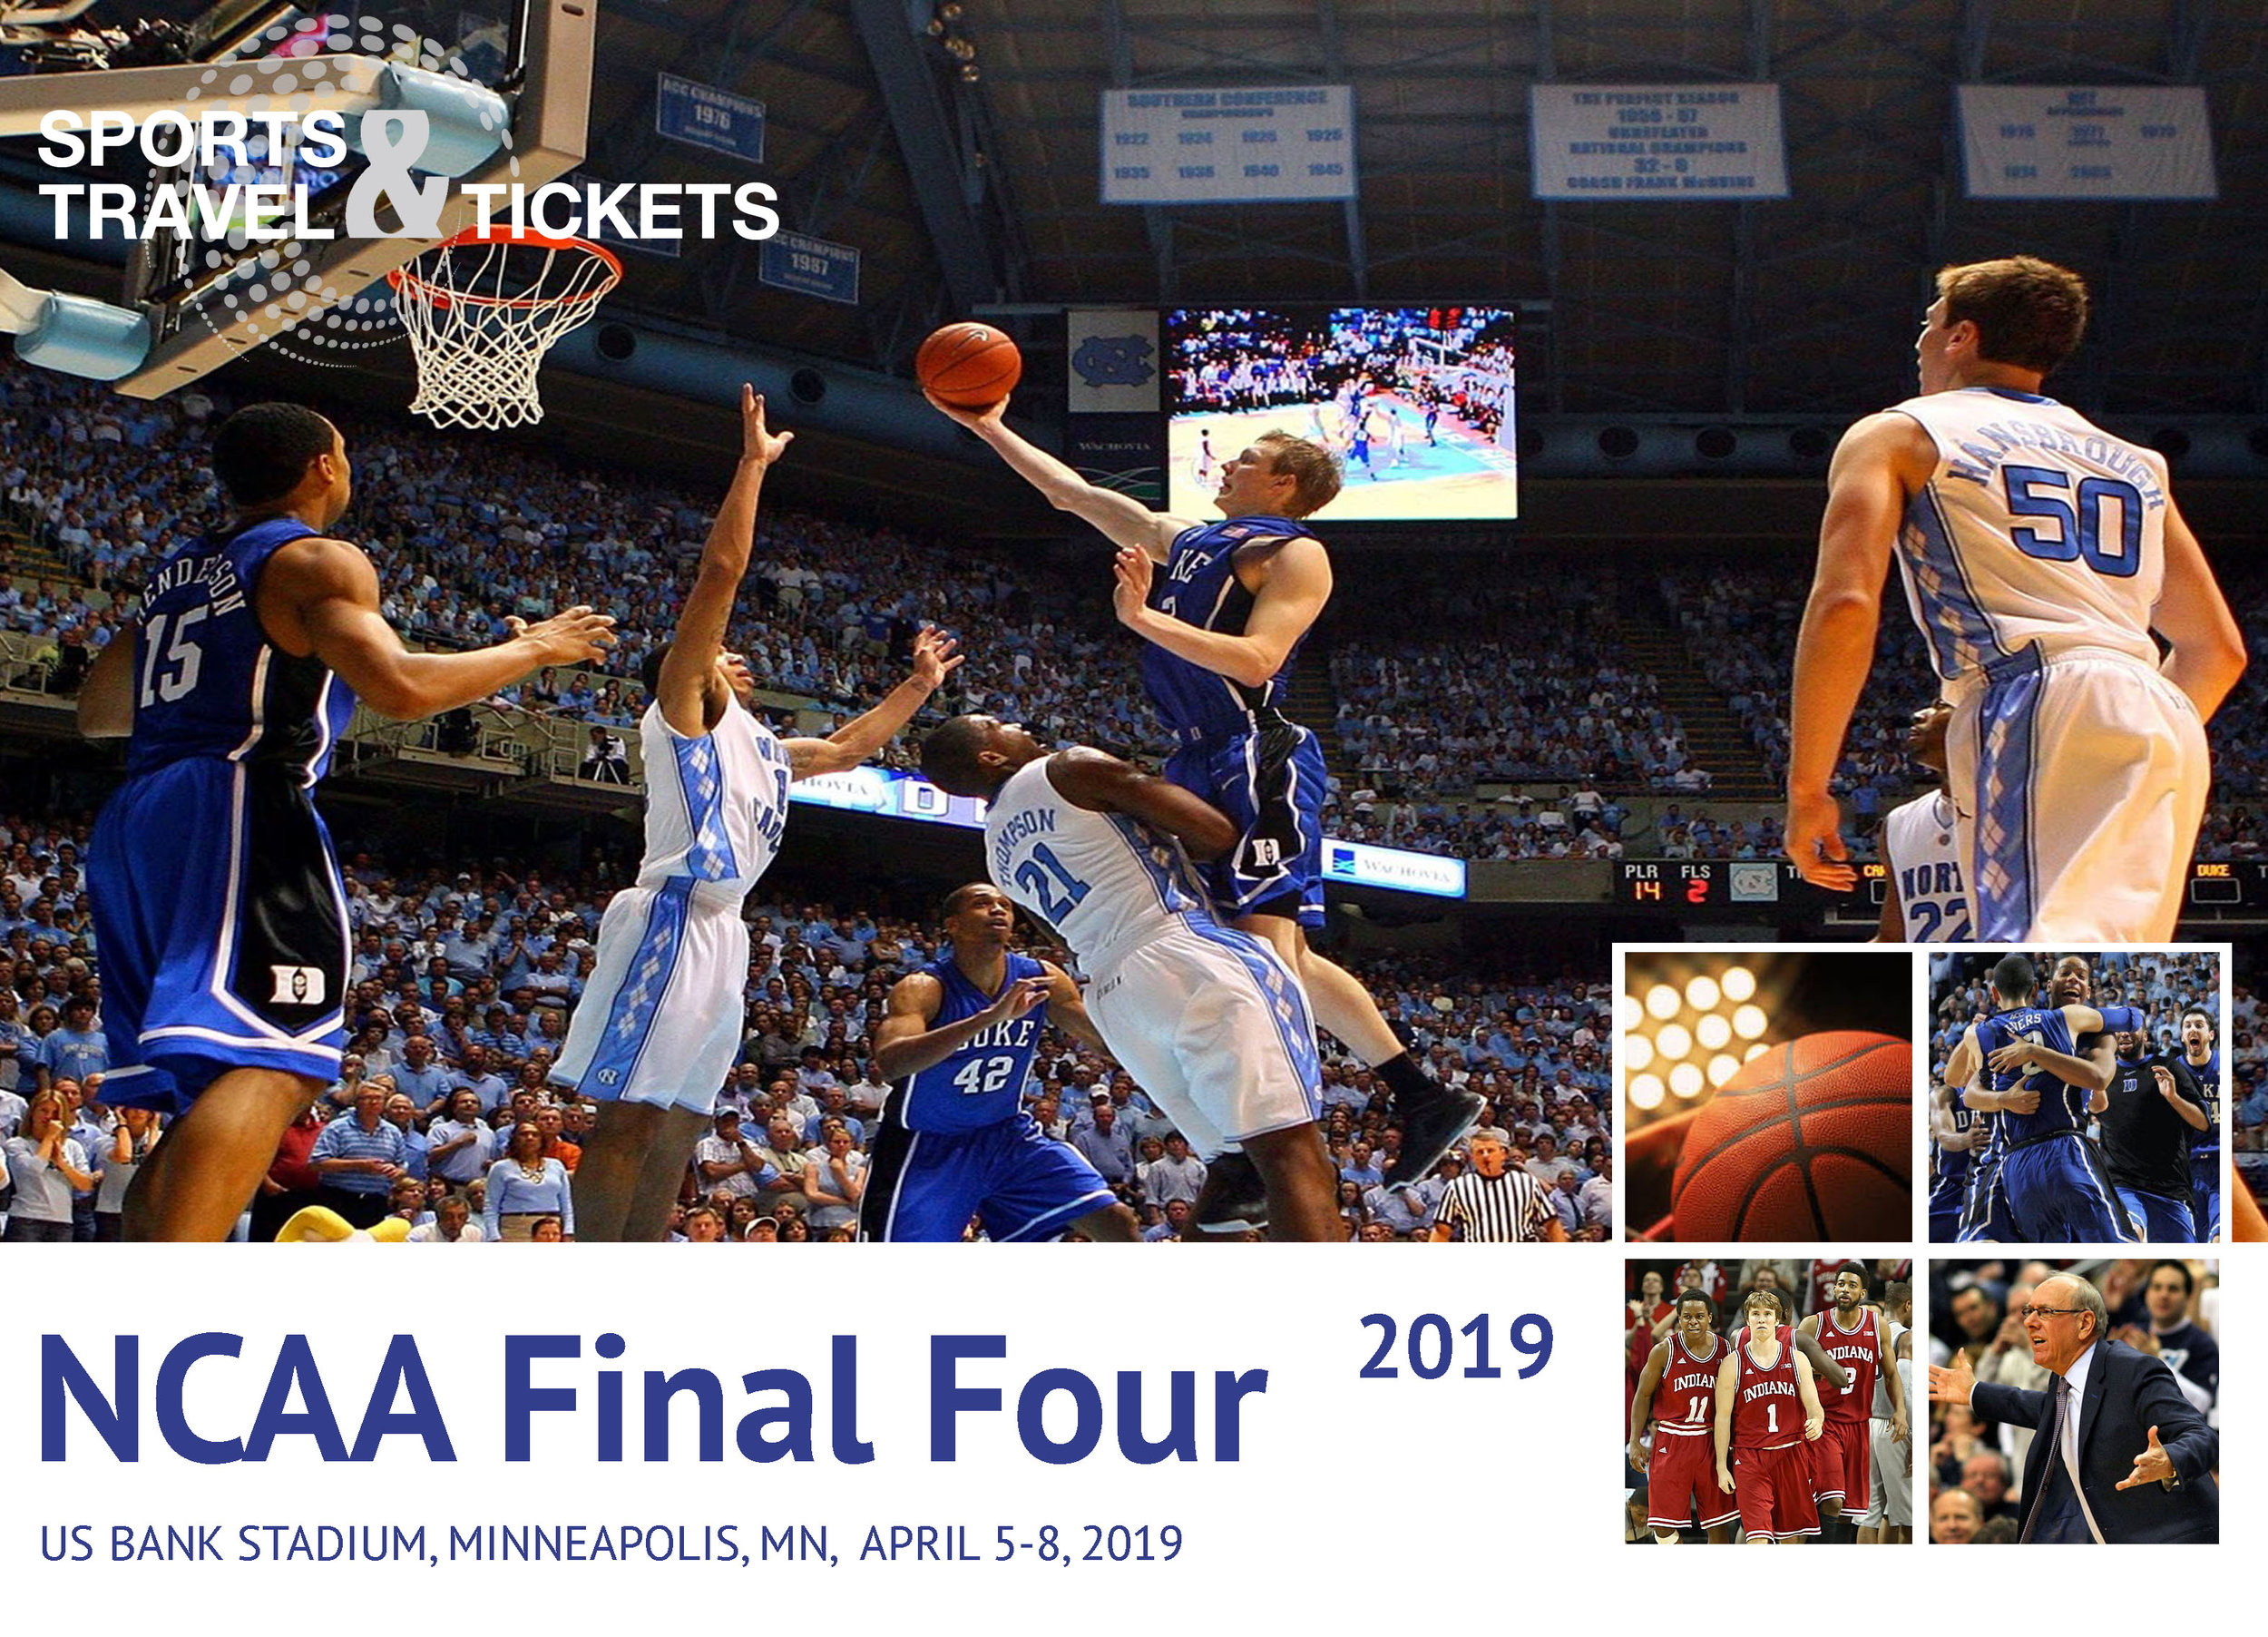 NCAA Final Four Tickets Packages Hotels Sports Travel.jpg